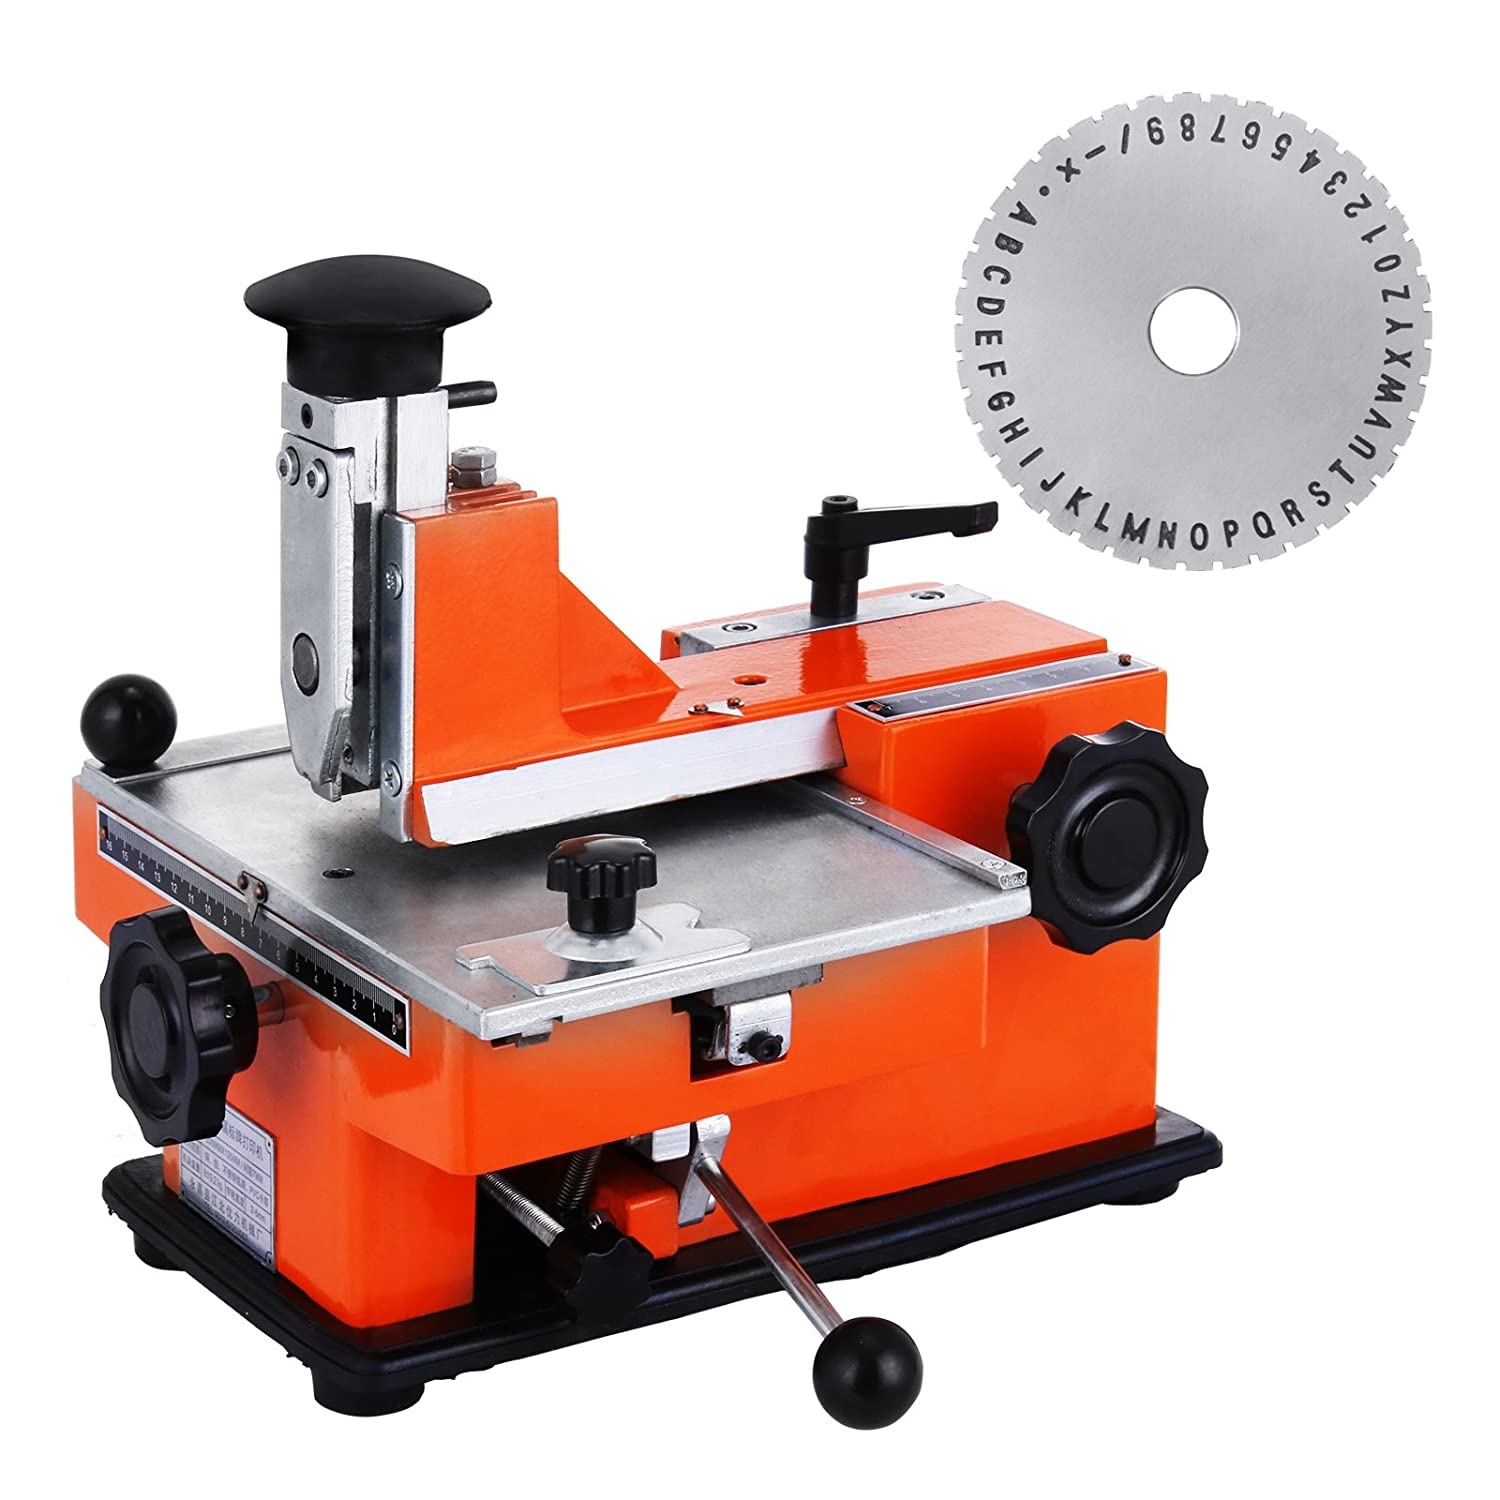 4mm Plate Happybuy Semi-Automatic Sheet Embosser 2~4 Characters per Second Metal Embosser Working Plate 7.85.3 Embossing Label Maker Machine with 4mm Aluminum Plate